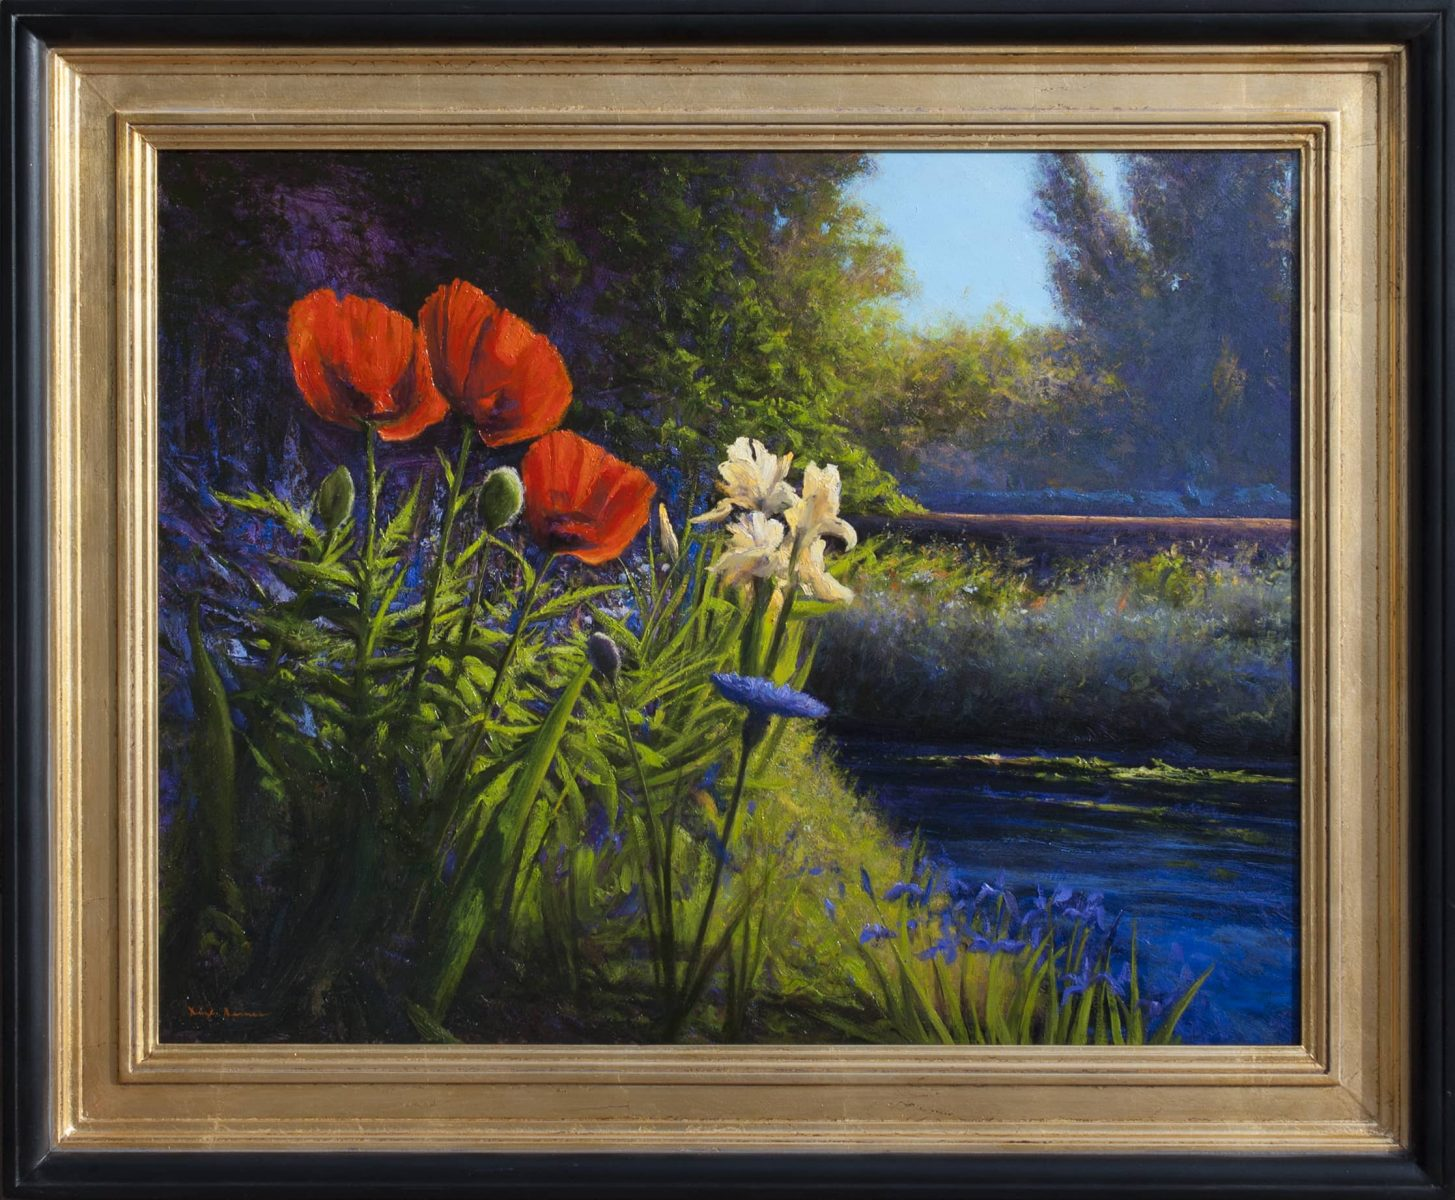 Poppies Red with Dappled Blues painting by Dix Baines